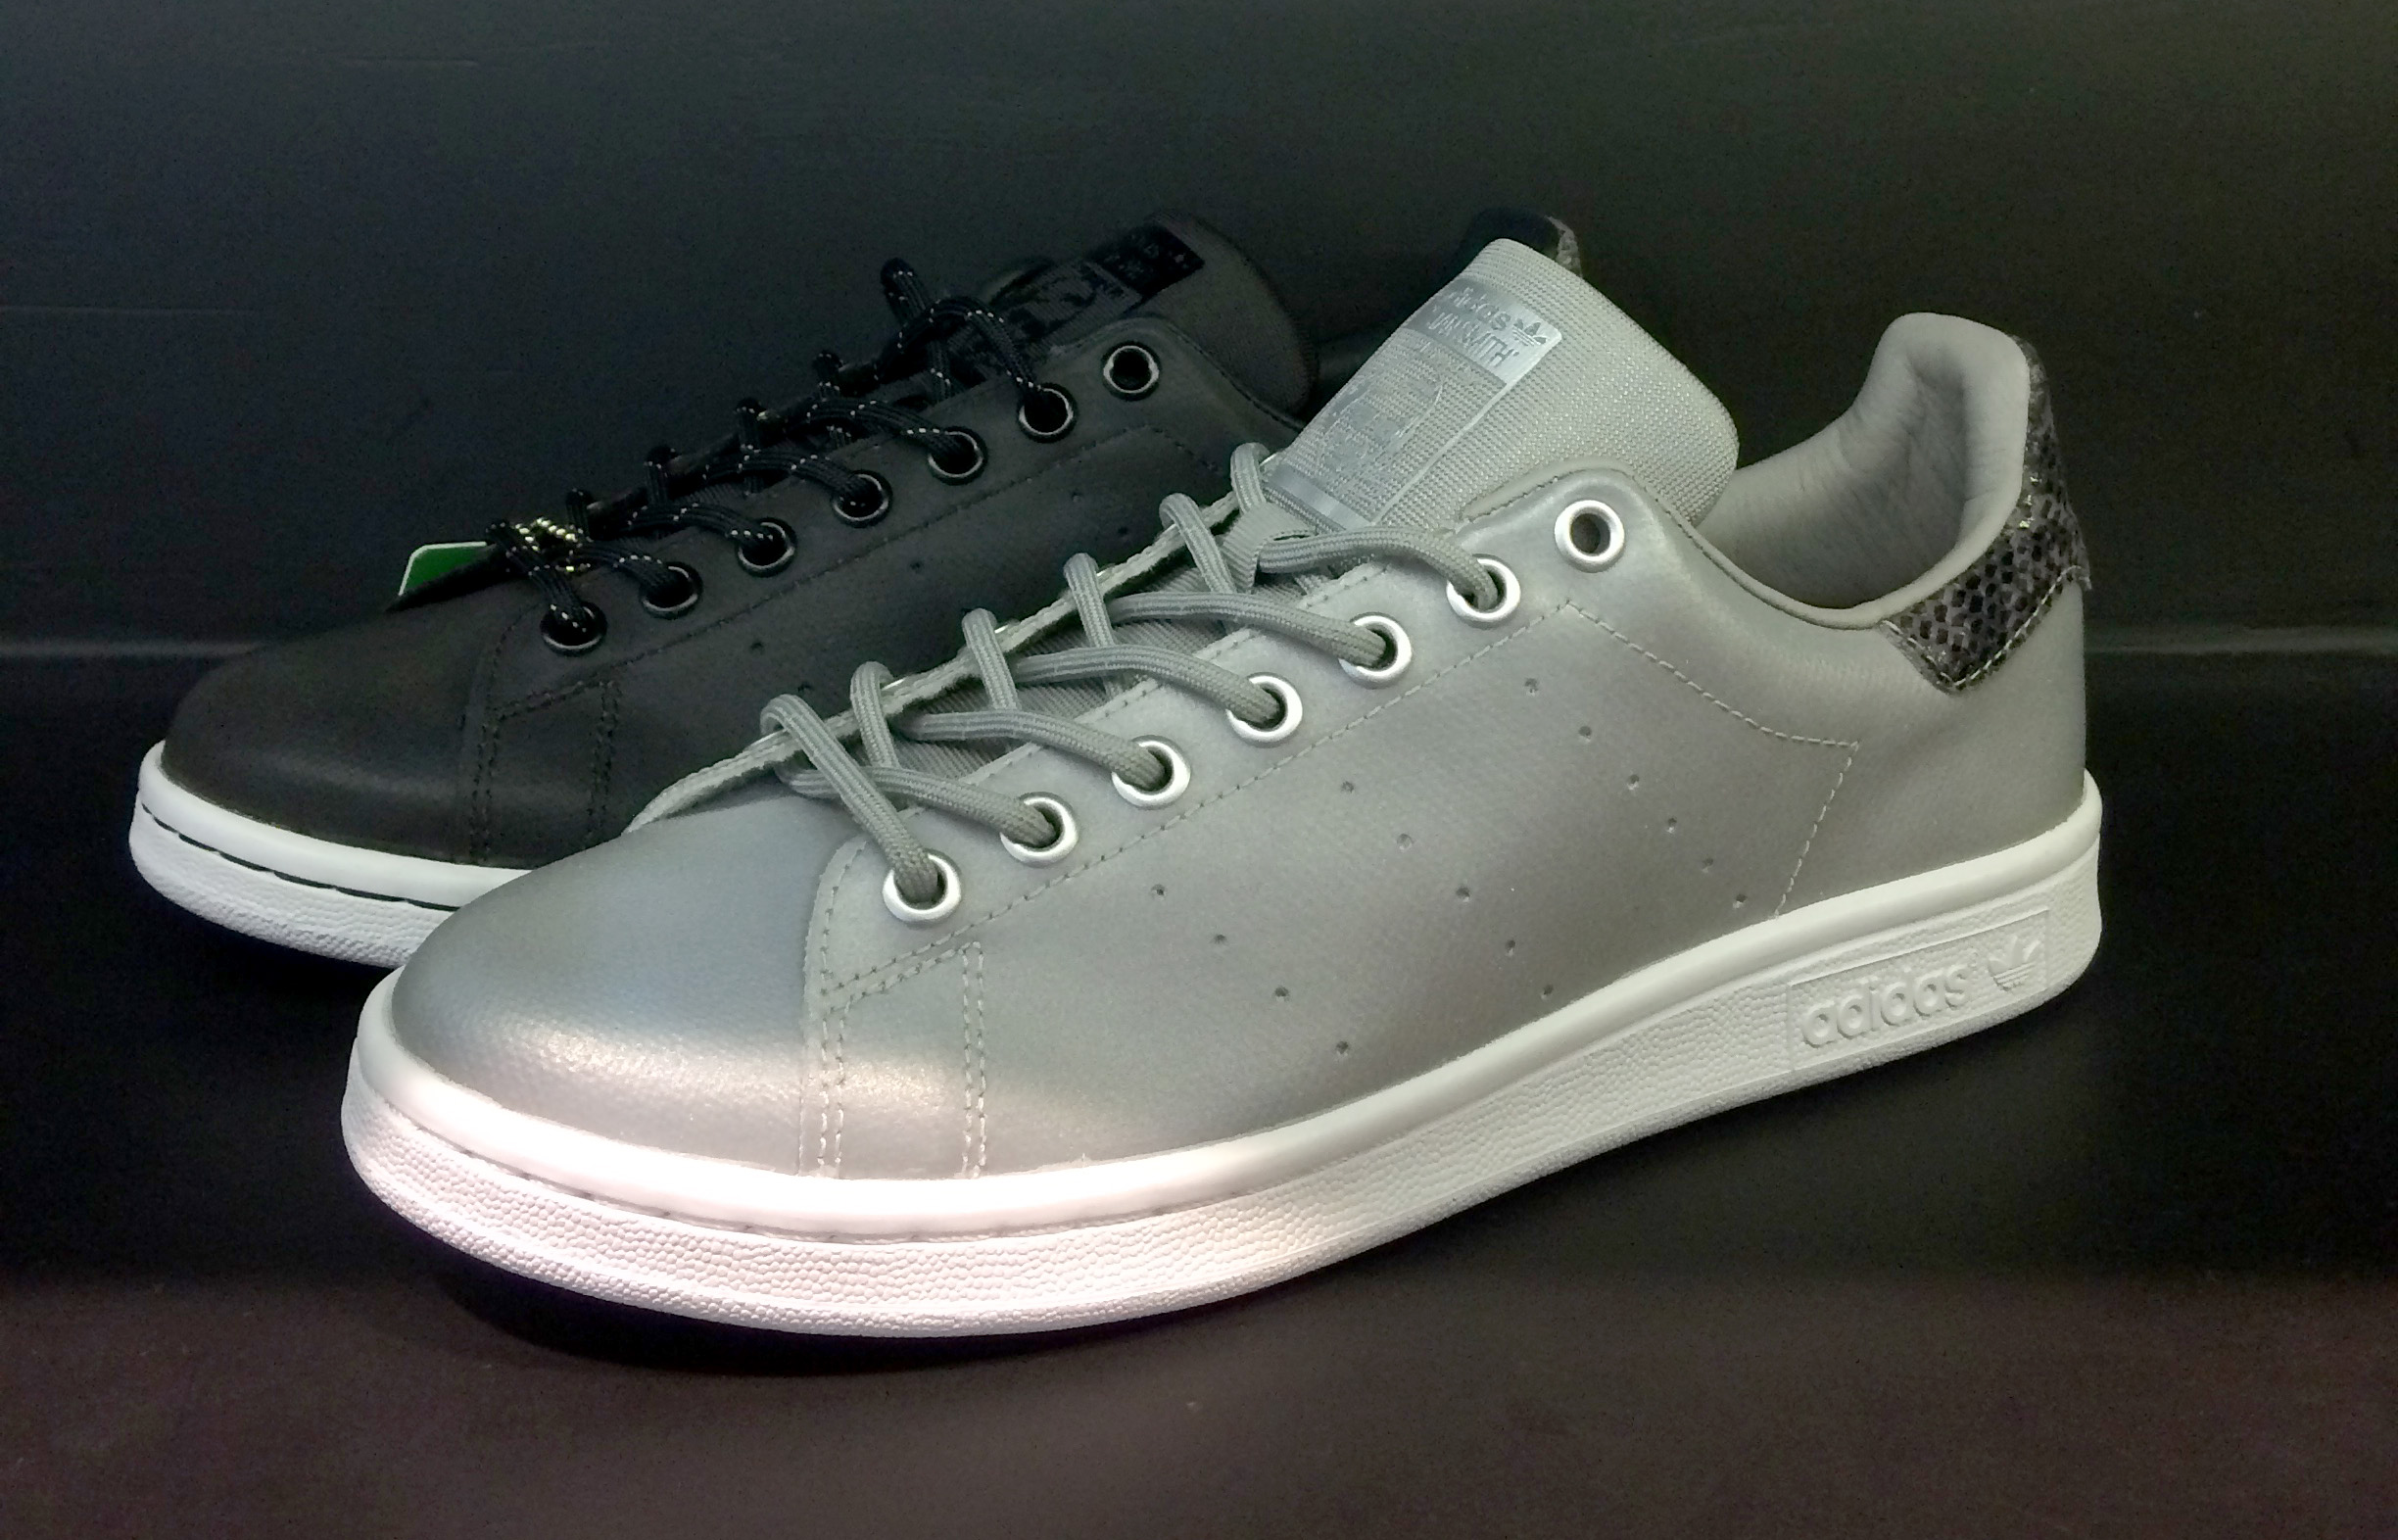 Adidas Originals Stan Smith Reflective Pack